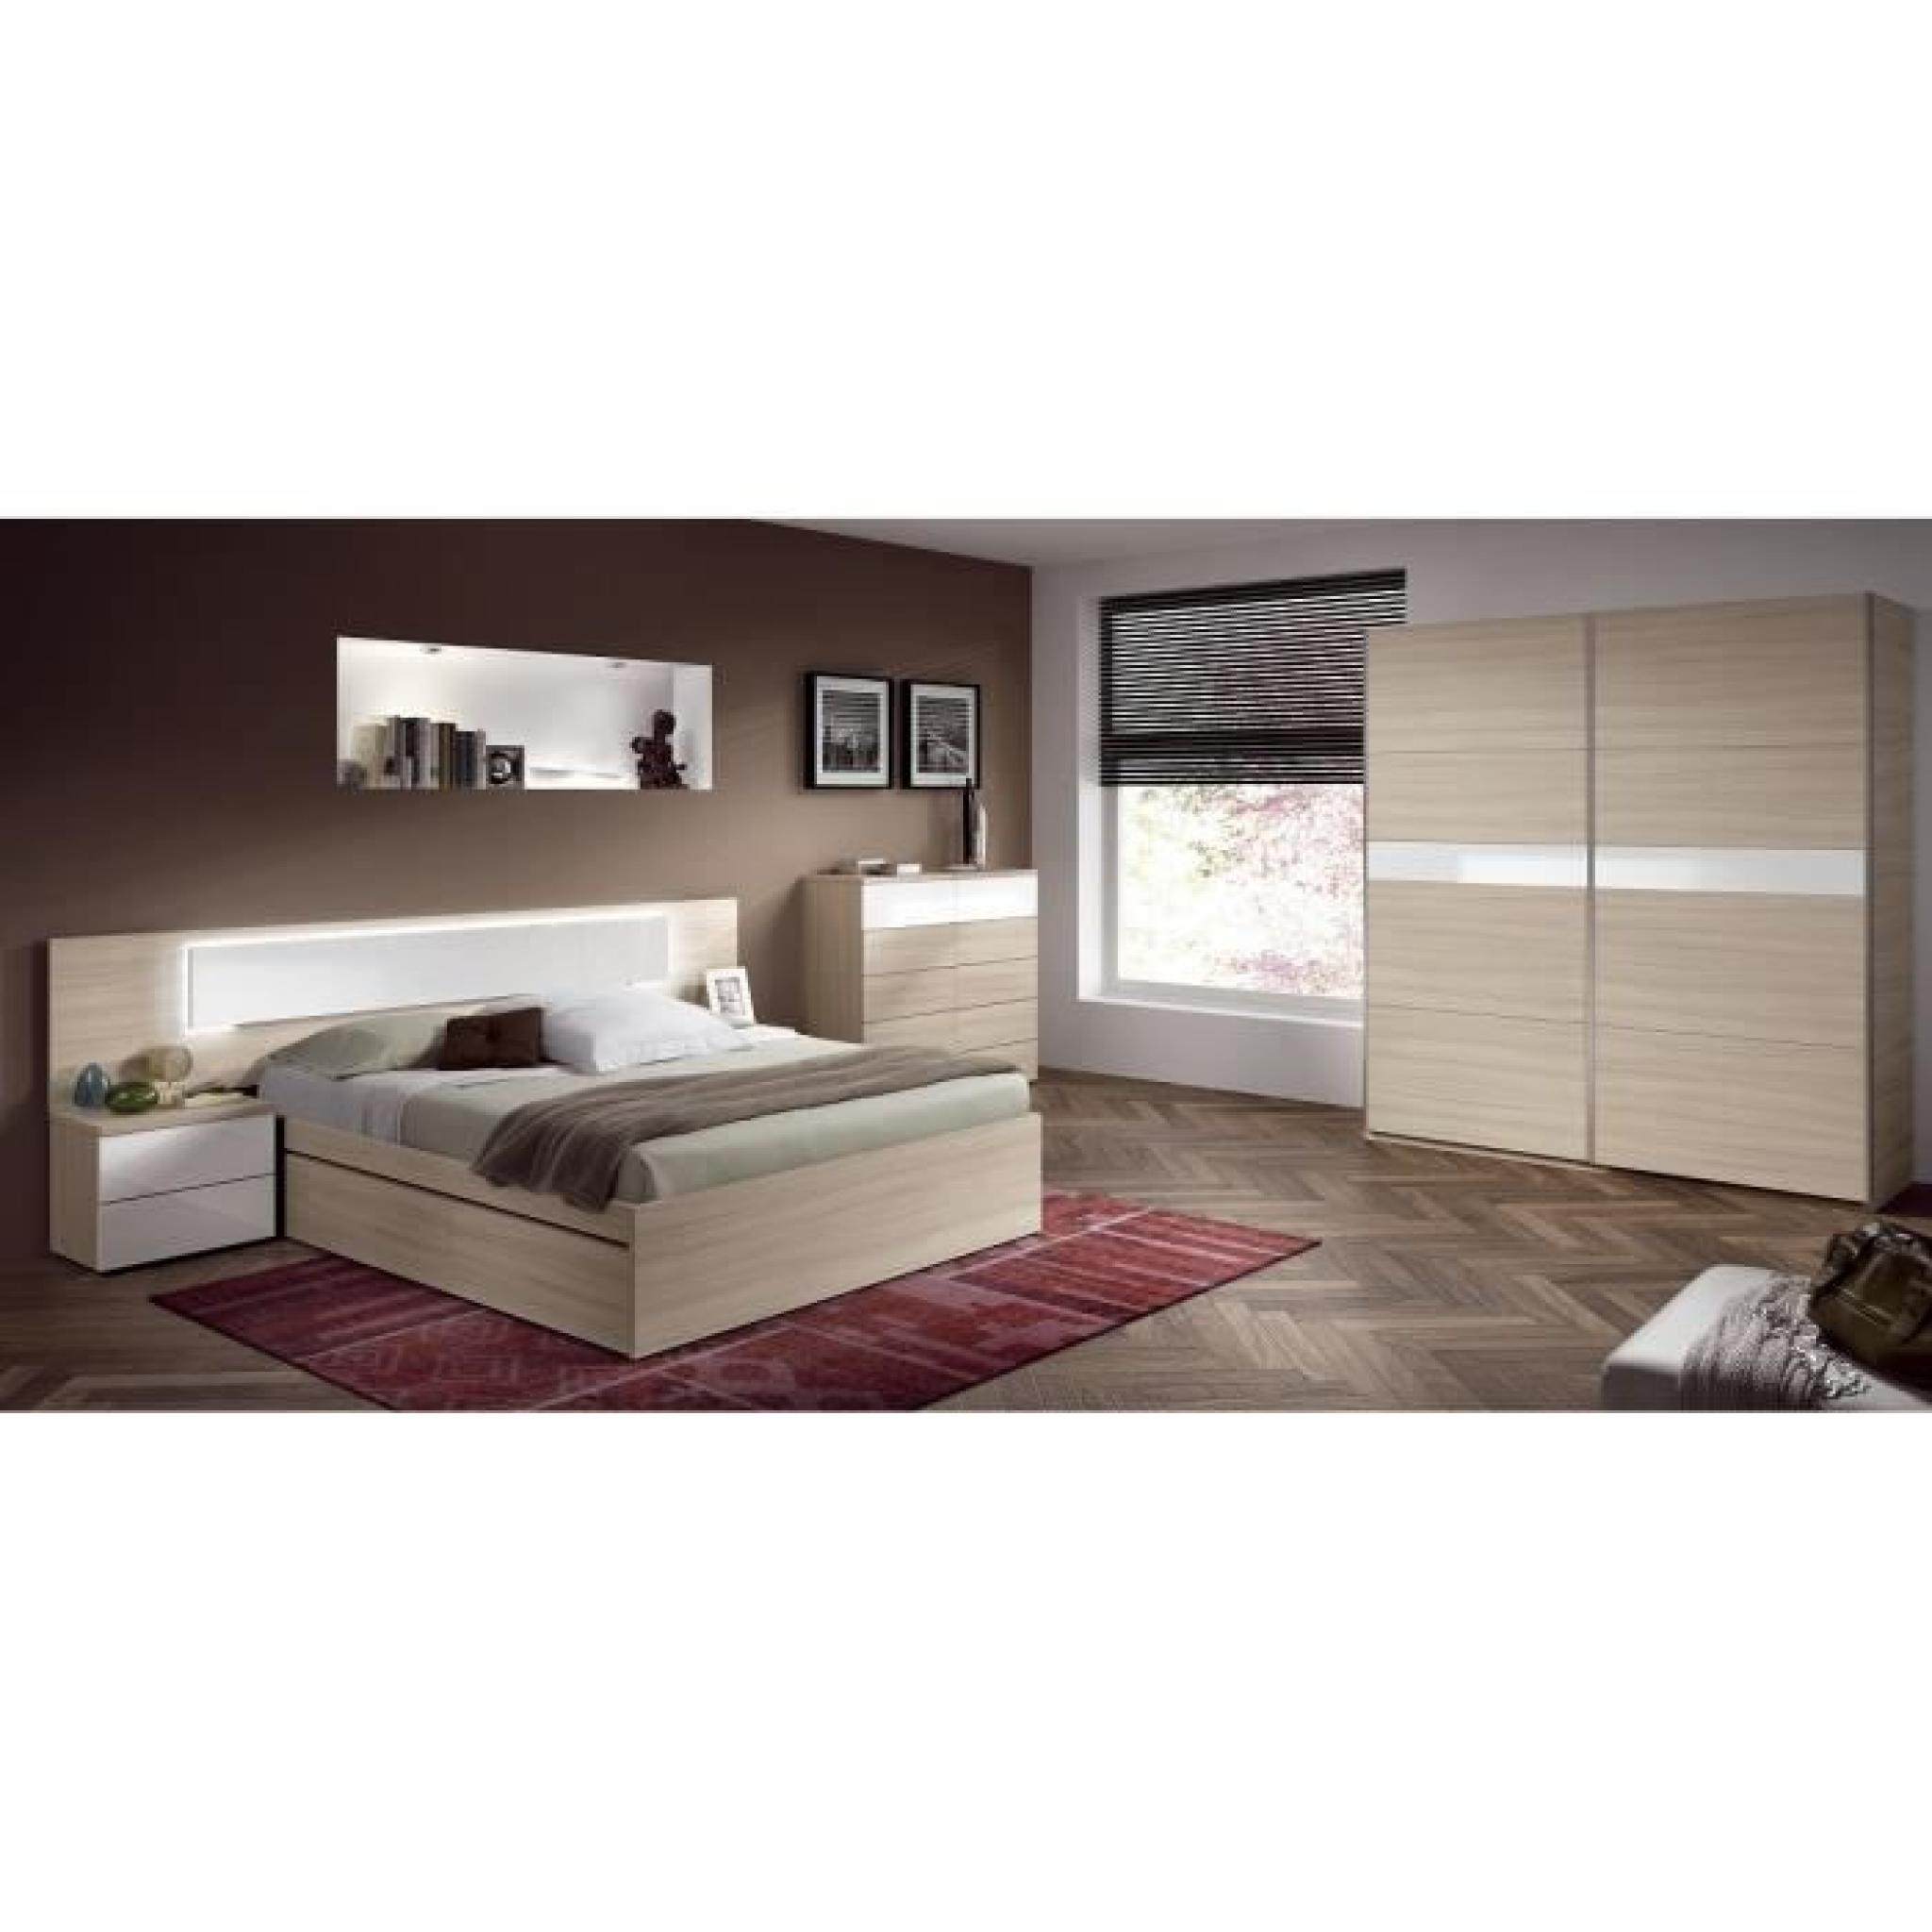 alana t te de lit avec led 263 cm 2 chevets d cor bois et blanc brillant achat vente tete. Black Bedroom Furniture Sets. Home Design Ideas